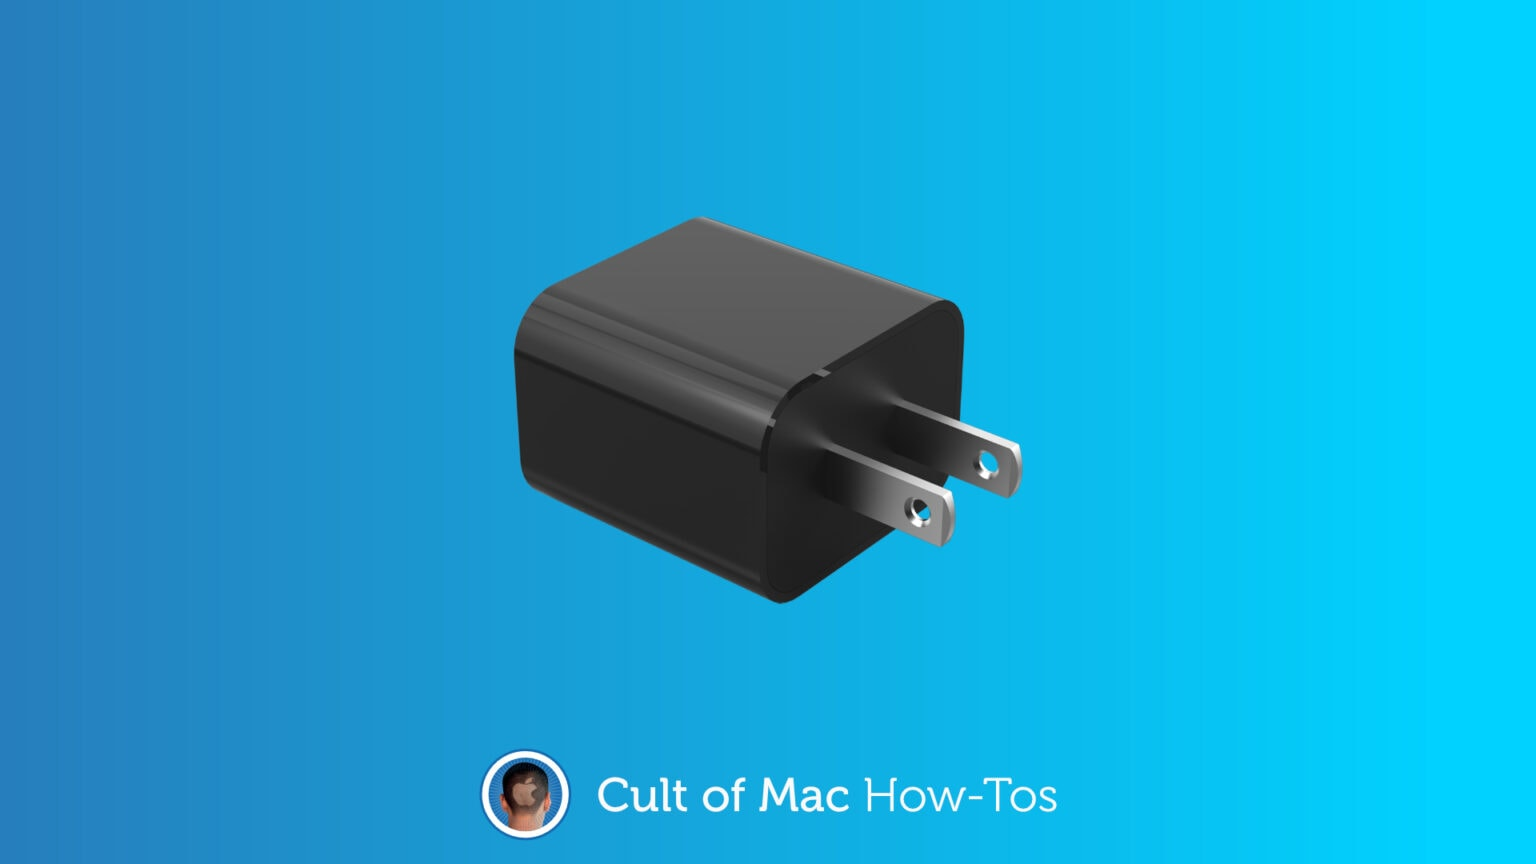 How to calculate wattage of iPhone charger